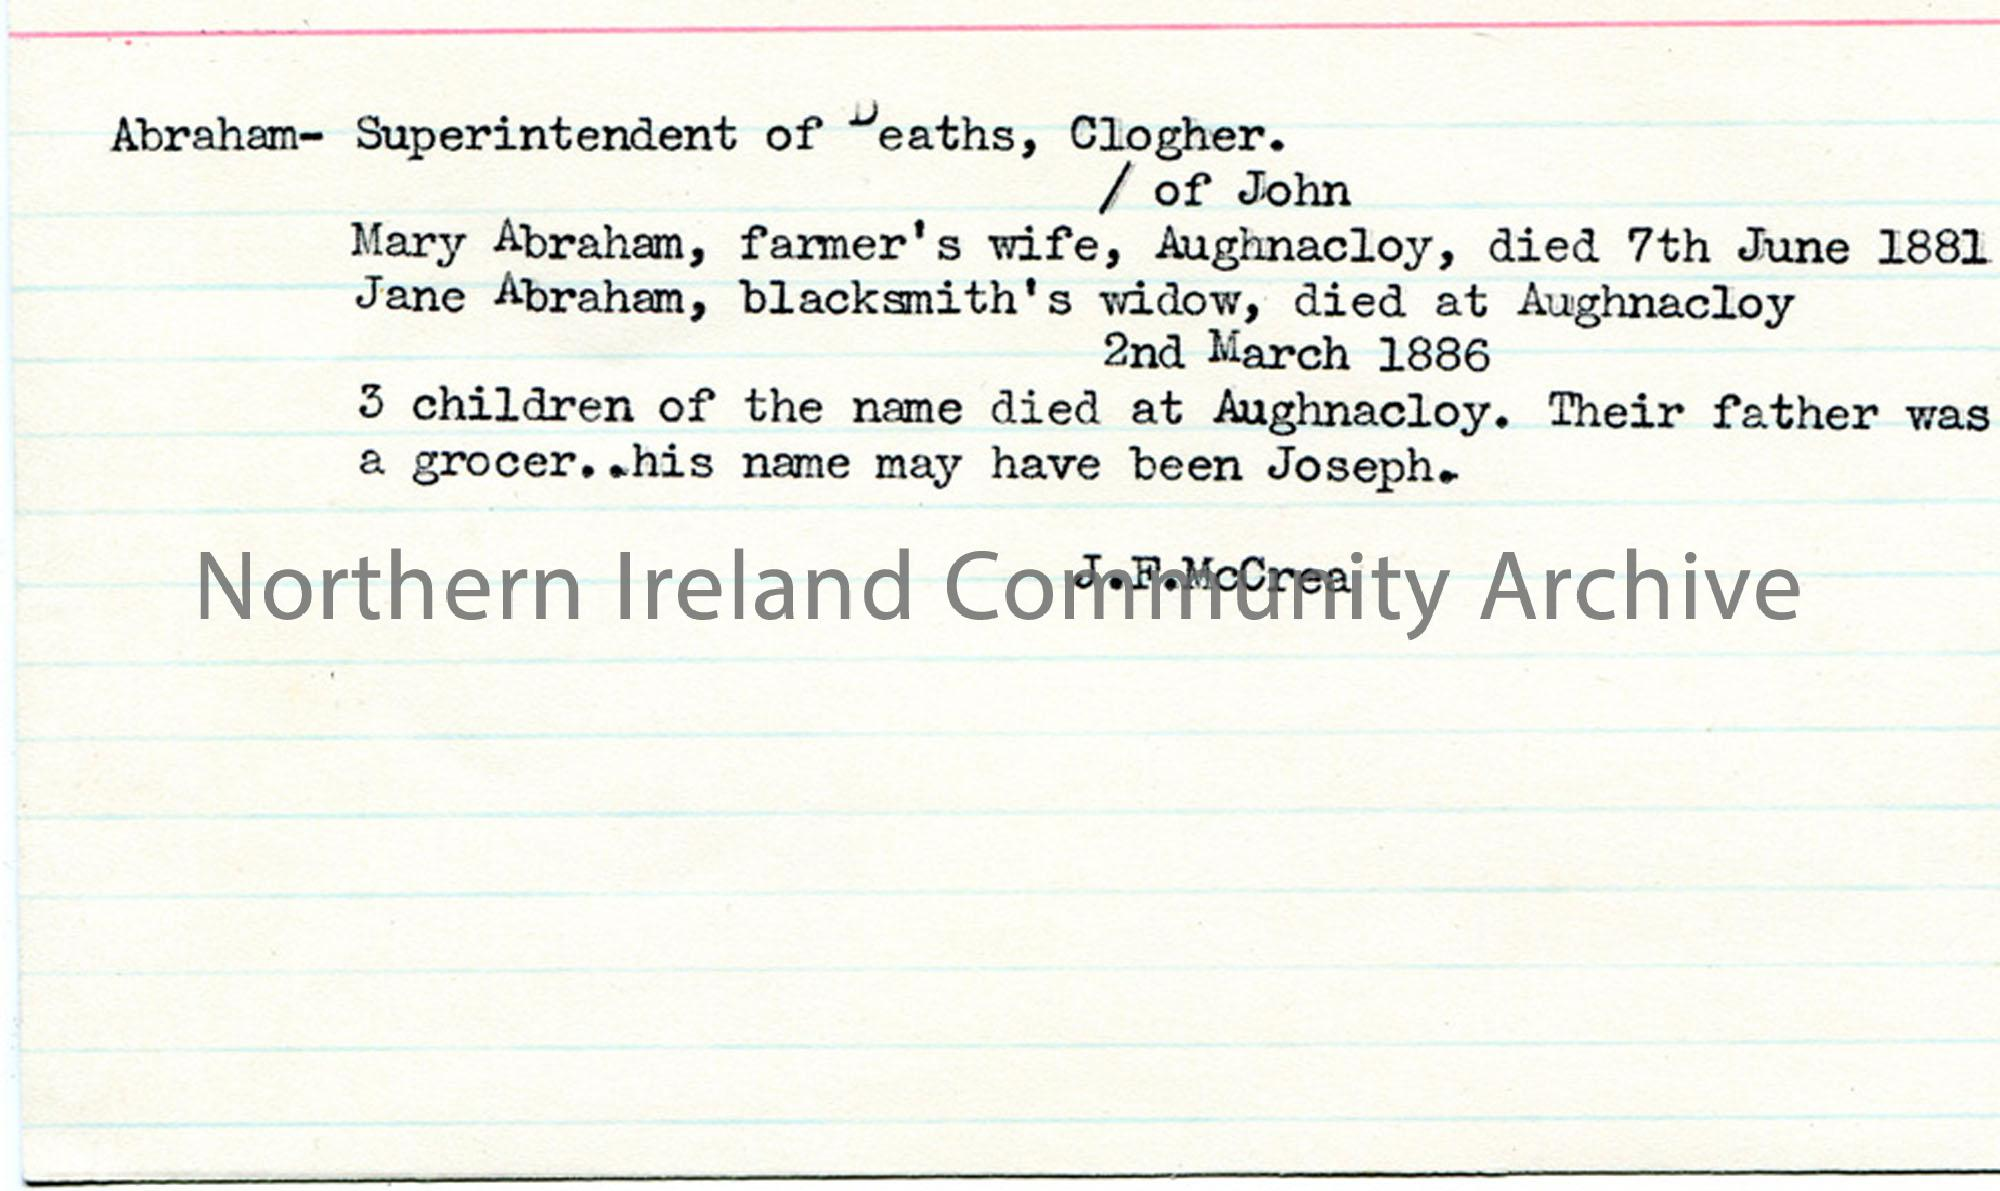 Notes re Abrahams of Aughnacloy